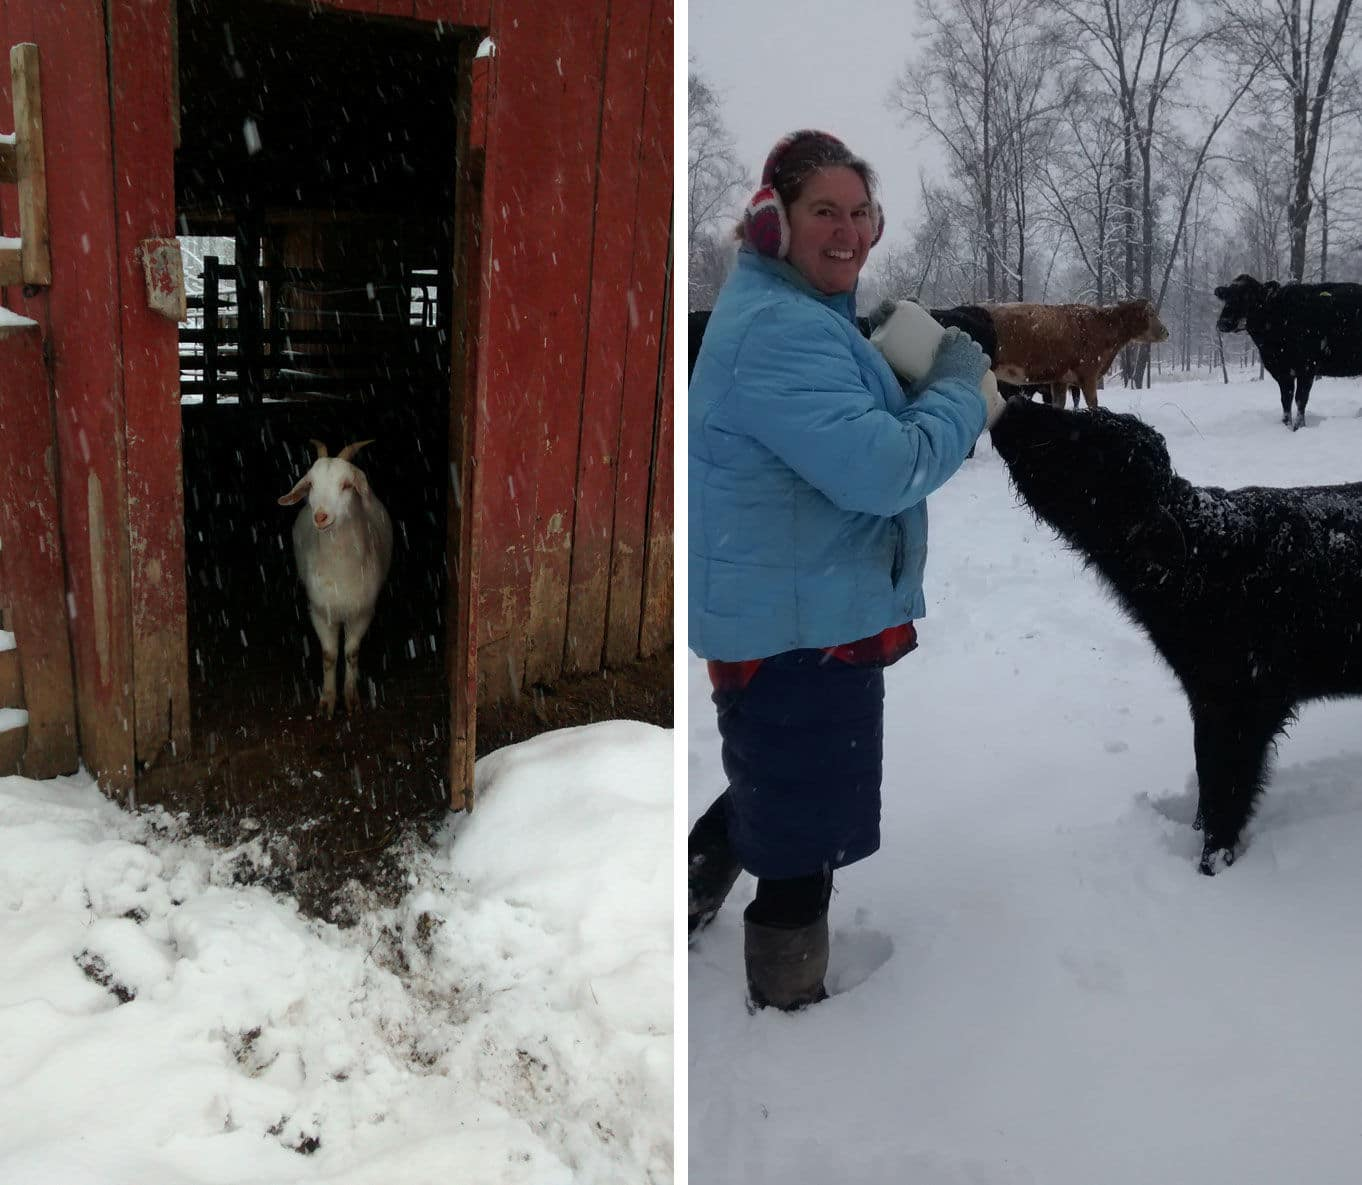 Ben and Sherri Phares share these pictures from their farm in Haymarket, Virginia. (Courtesy Ben and Sherri Phares)